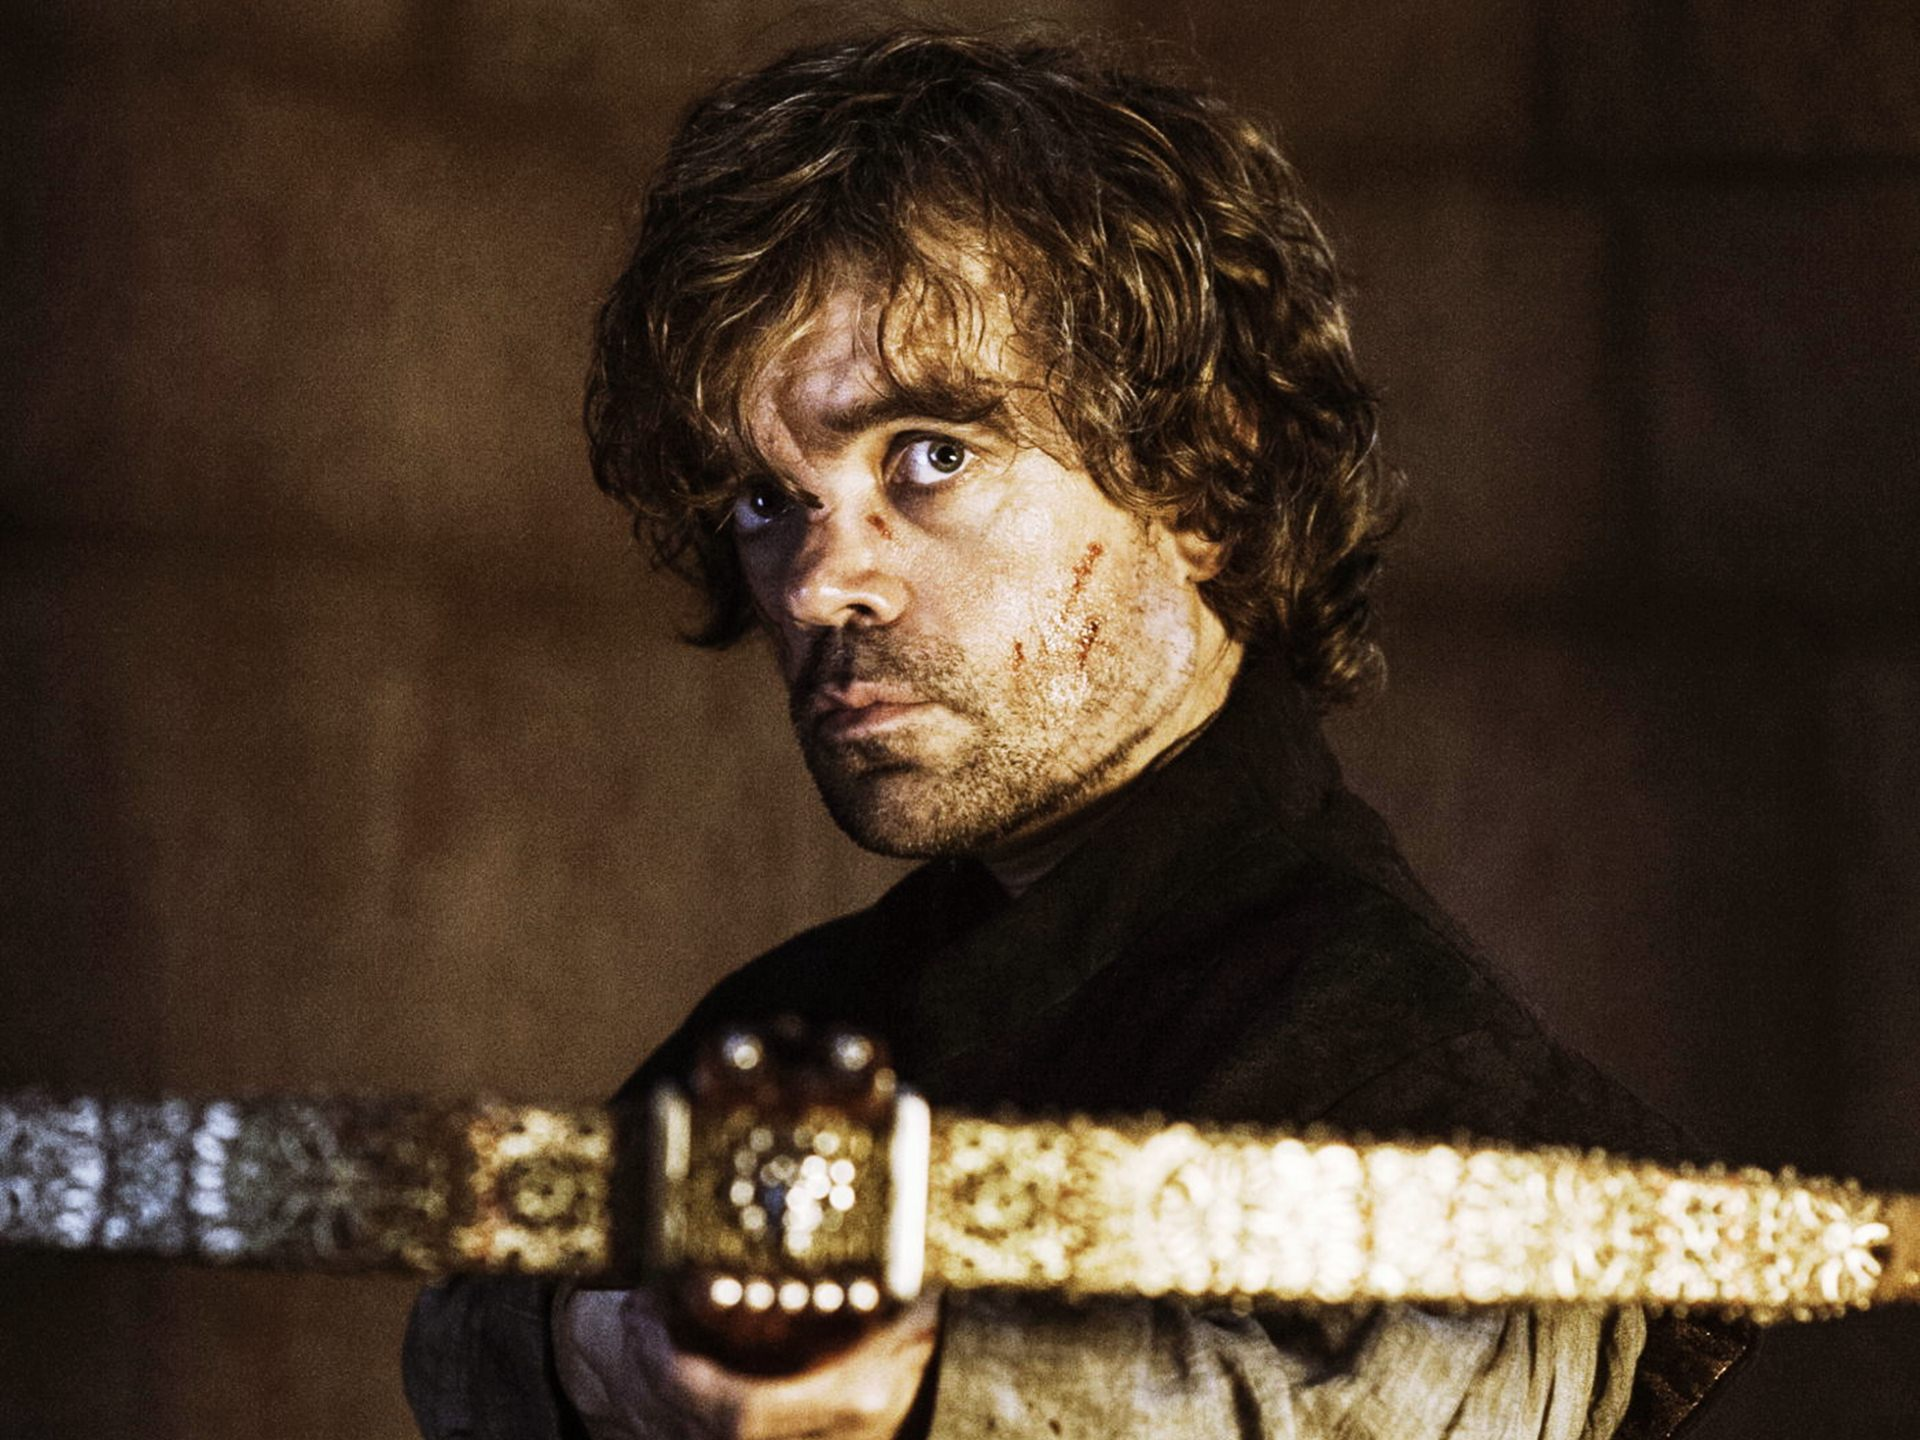 Peter Dinklage Wallpapers Game of Thrones season Peter Dinklage hd wallpaper PoPoPics com